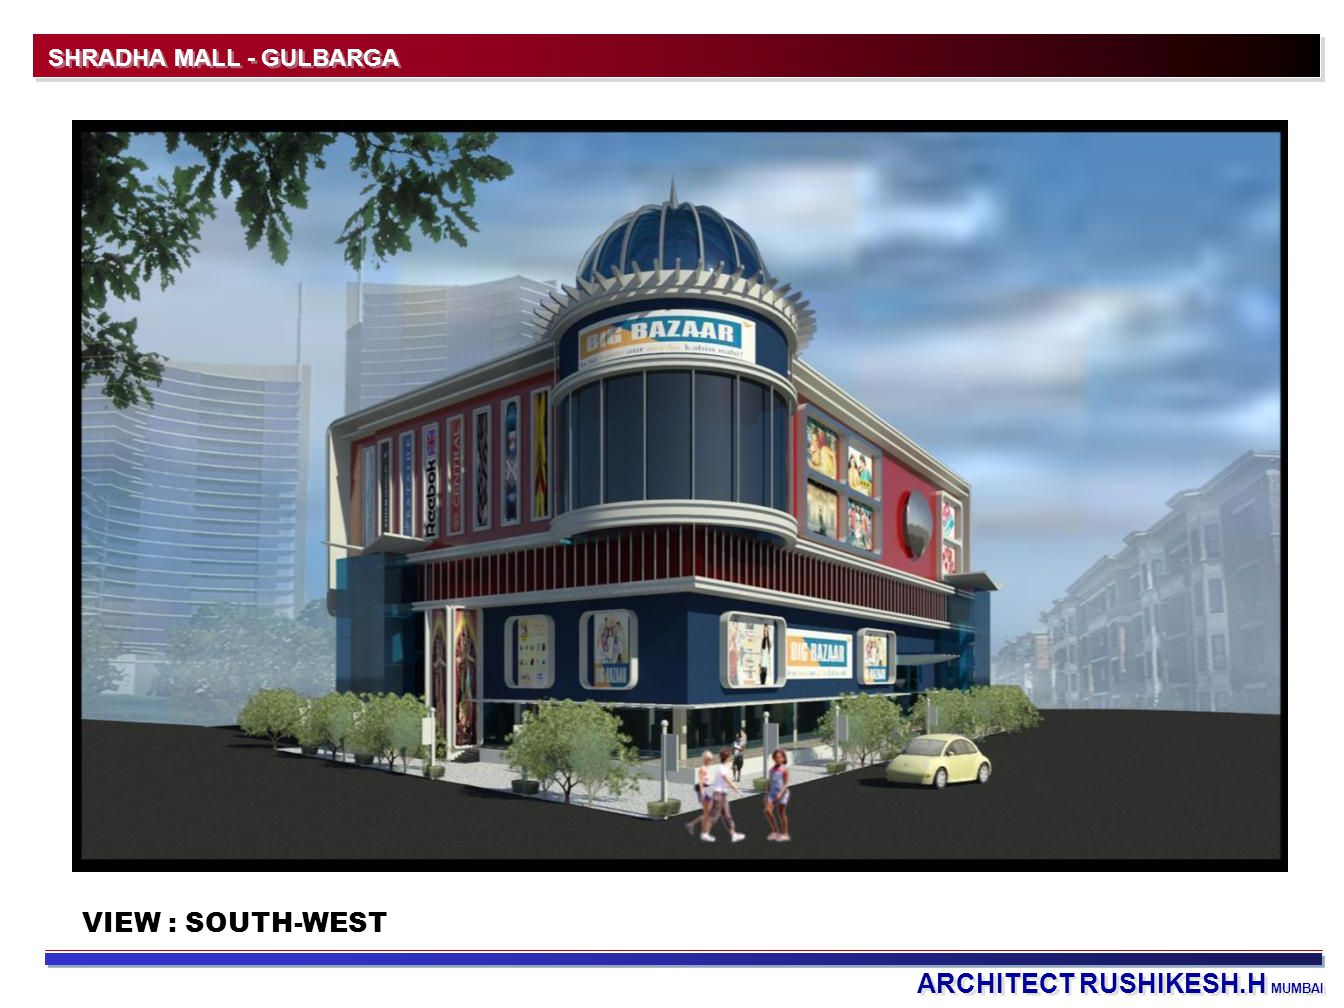 ARCHITECT RUSHIKESH.H MUMBAI SHRADHA MALL - GULBARGA VIEW : SOUTH-WEST